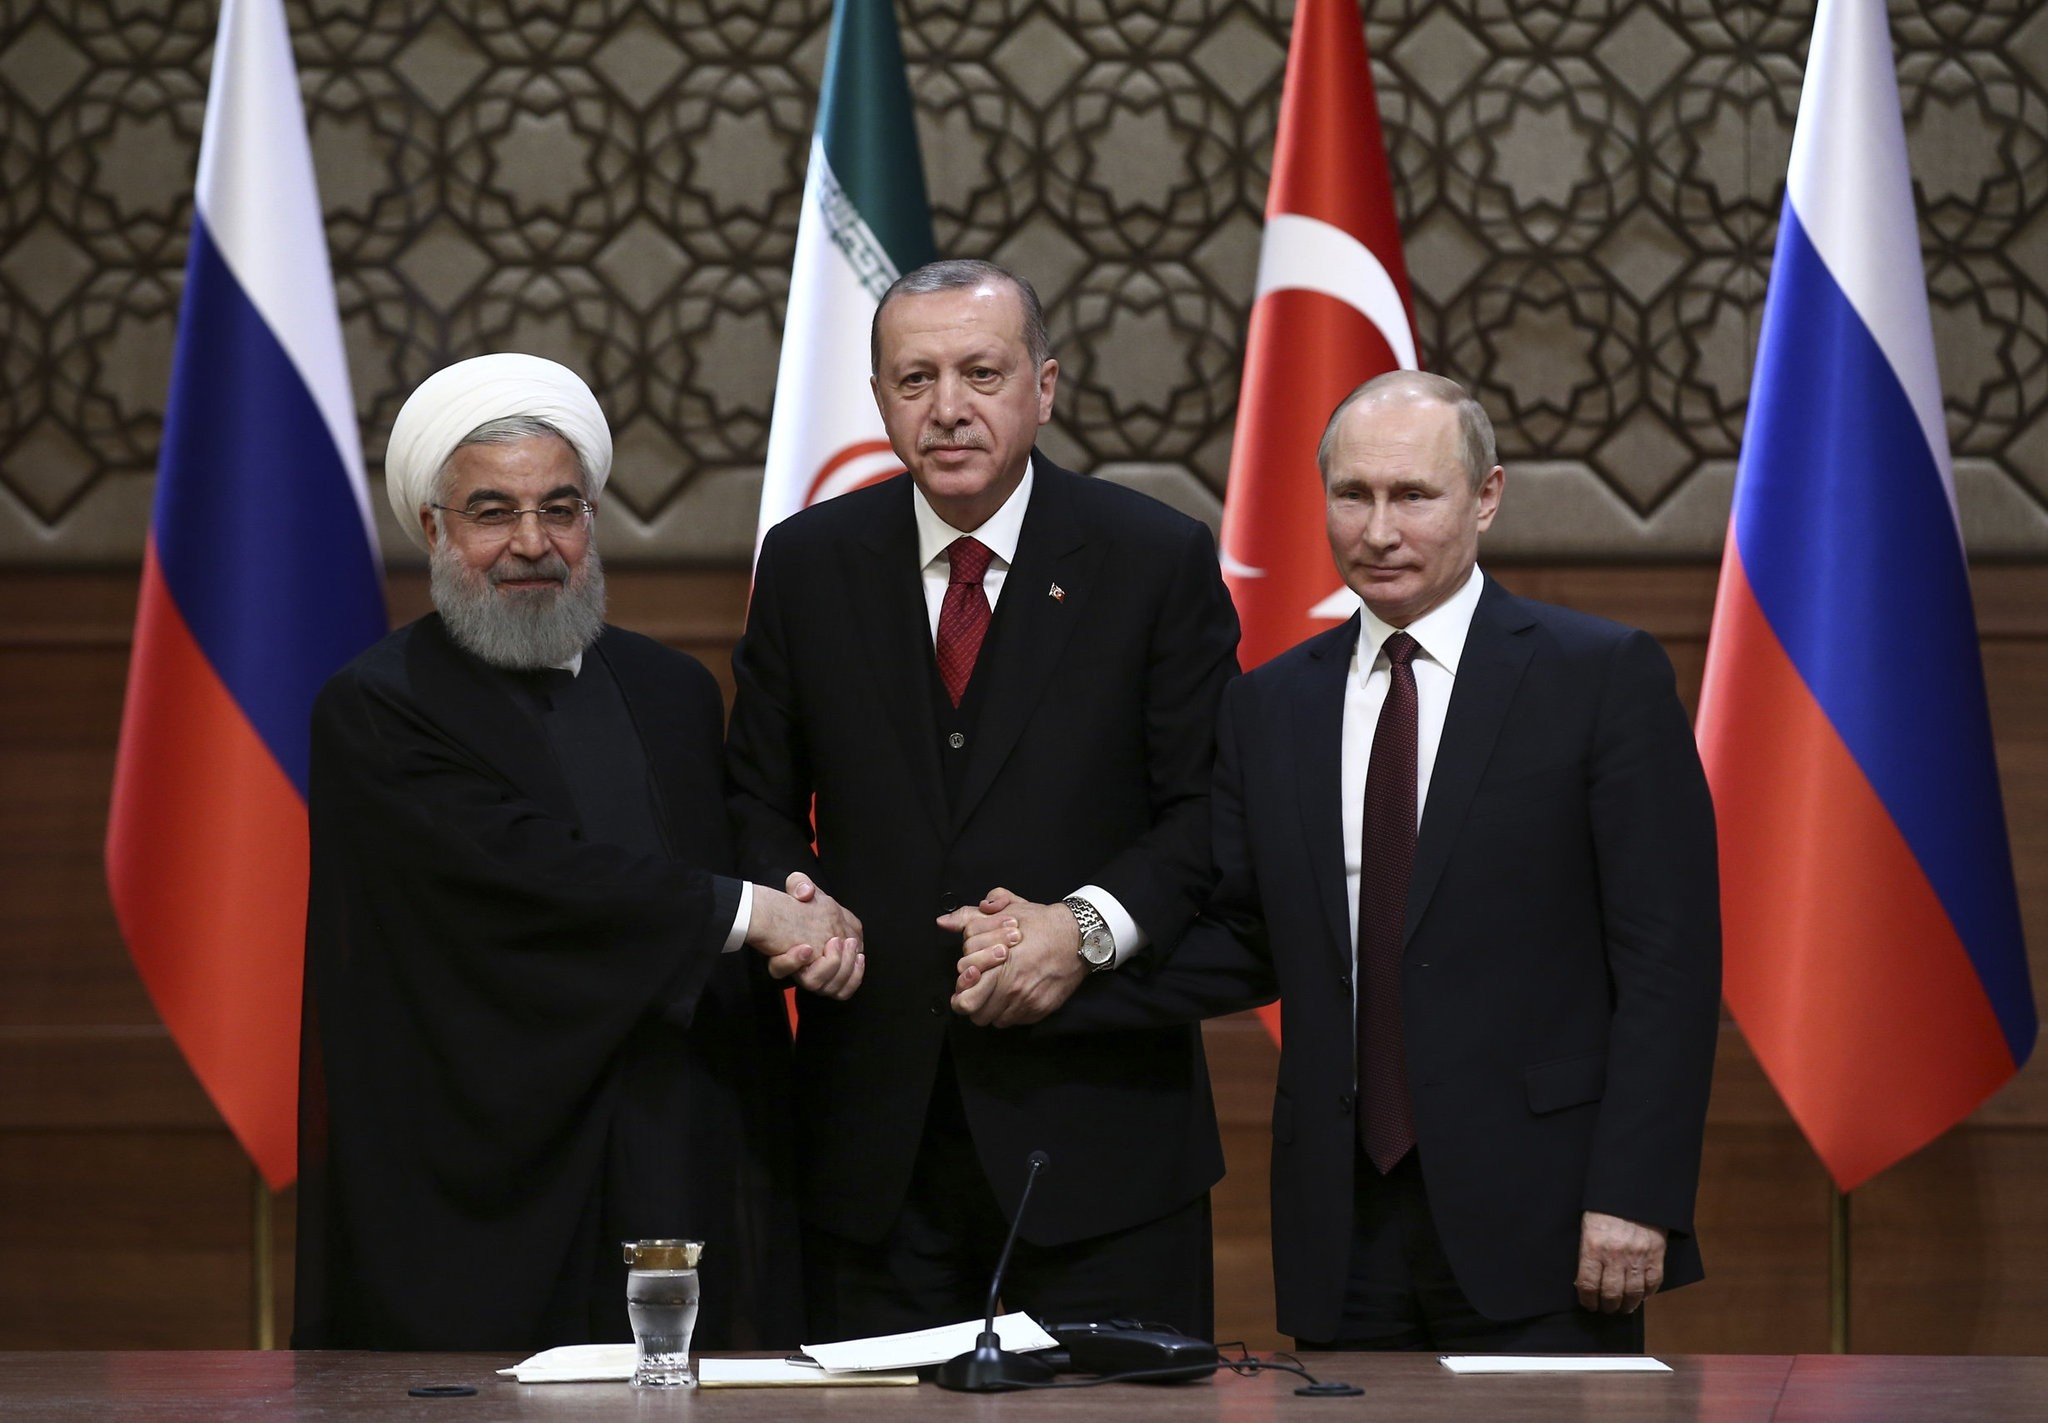 President Recep Tayyip Erdou011fan (C), Iranu2019s President Hassan Rouhani (L) and Russiau2019s President Vladimir Putin (R) shake hands after a joint conference as part of a tripartite summit on Syria in Ankara, April 4.